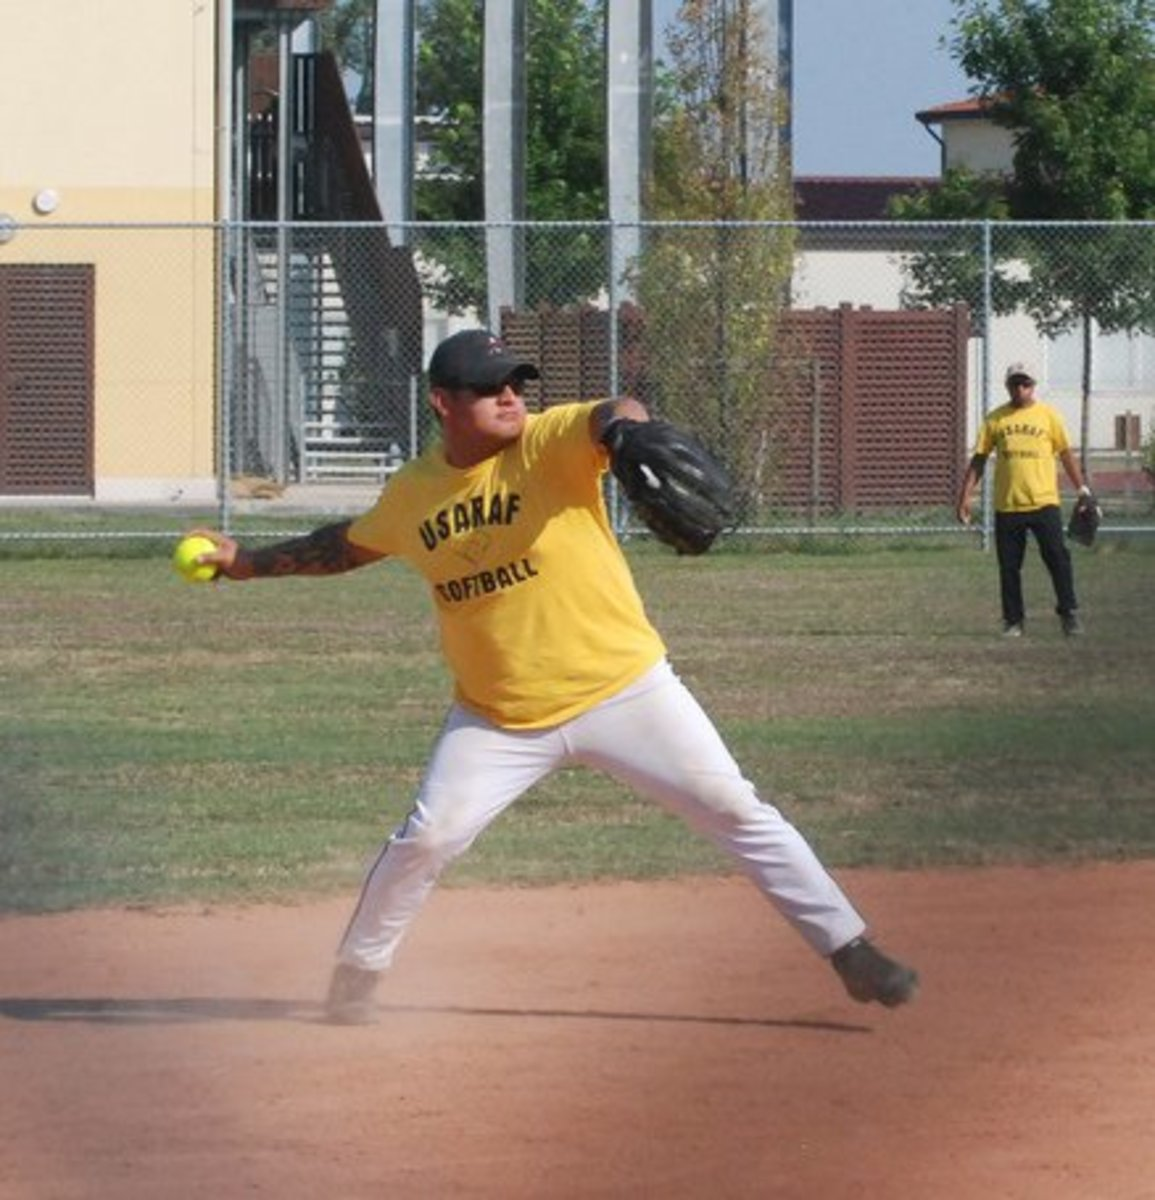 Note how the man has stepped forward with his opposite foot and is beginning to move his hips to the front, drawing his throwing arm across his body horizontally; a professional throwing technique.